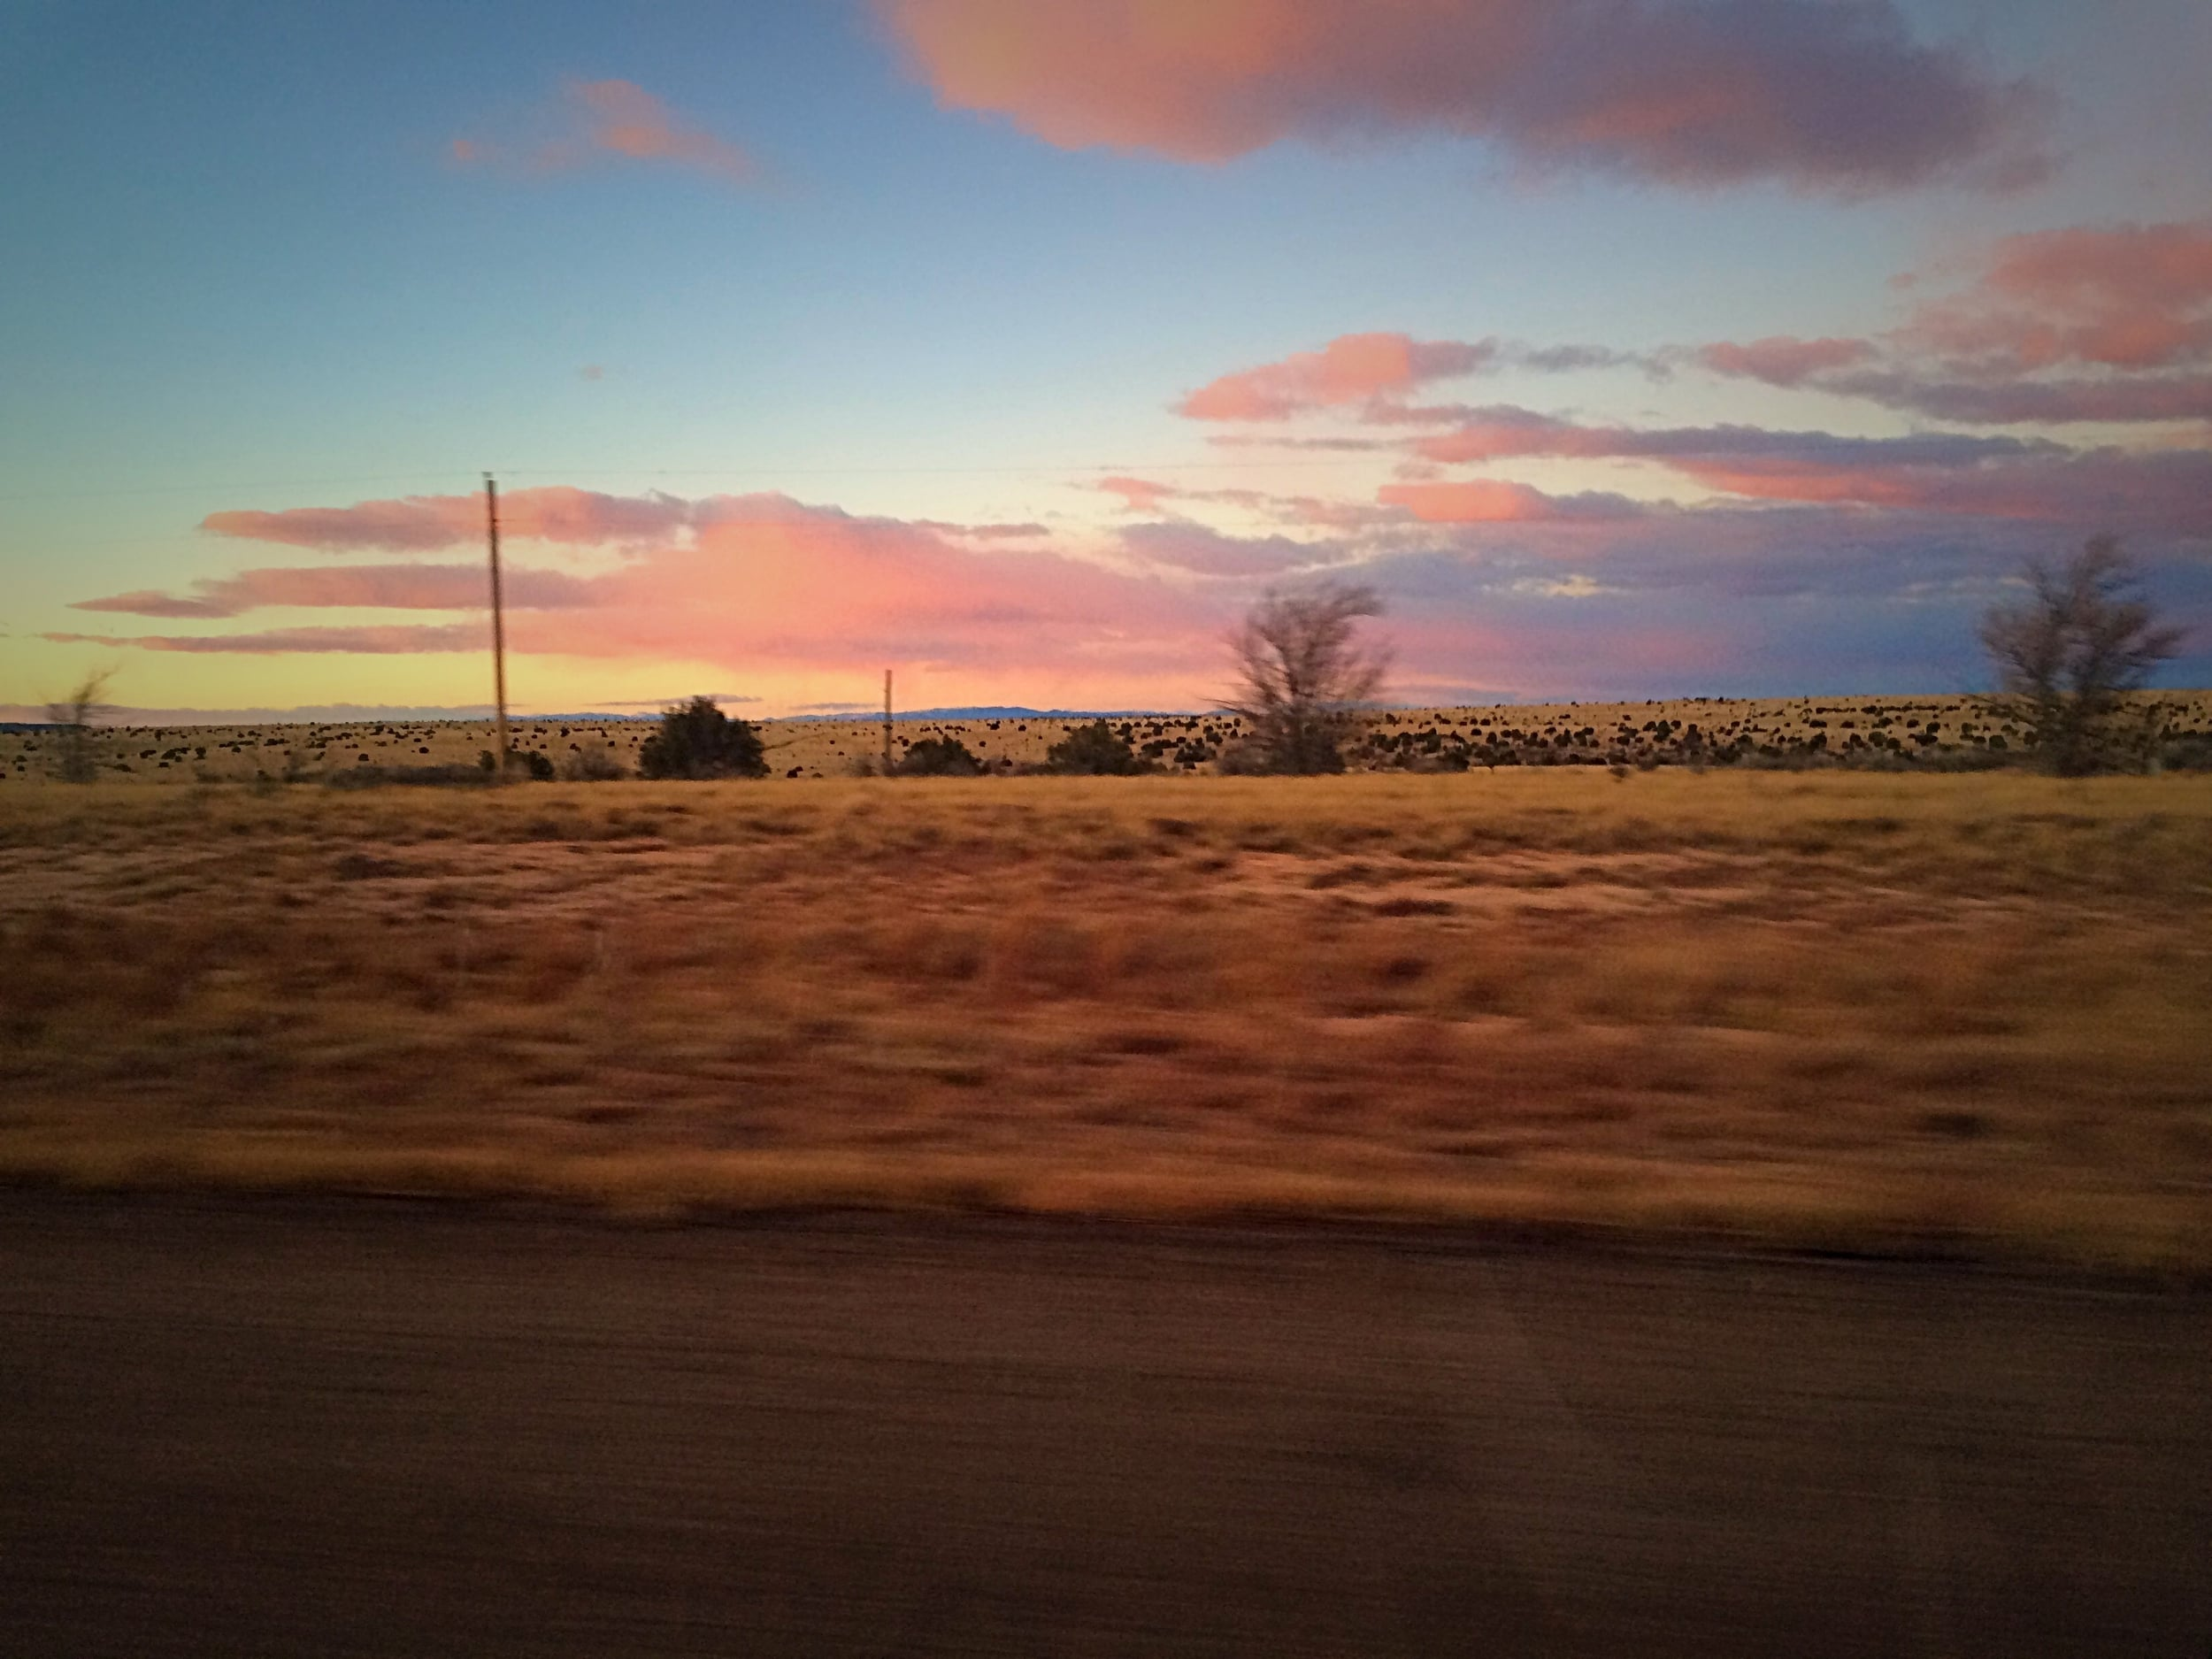 Starting the year with a road trip to Arizona, this is somewhere in Texas in the evening. We were chasing the sun.